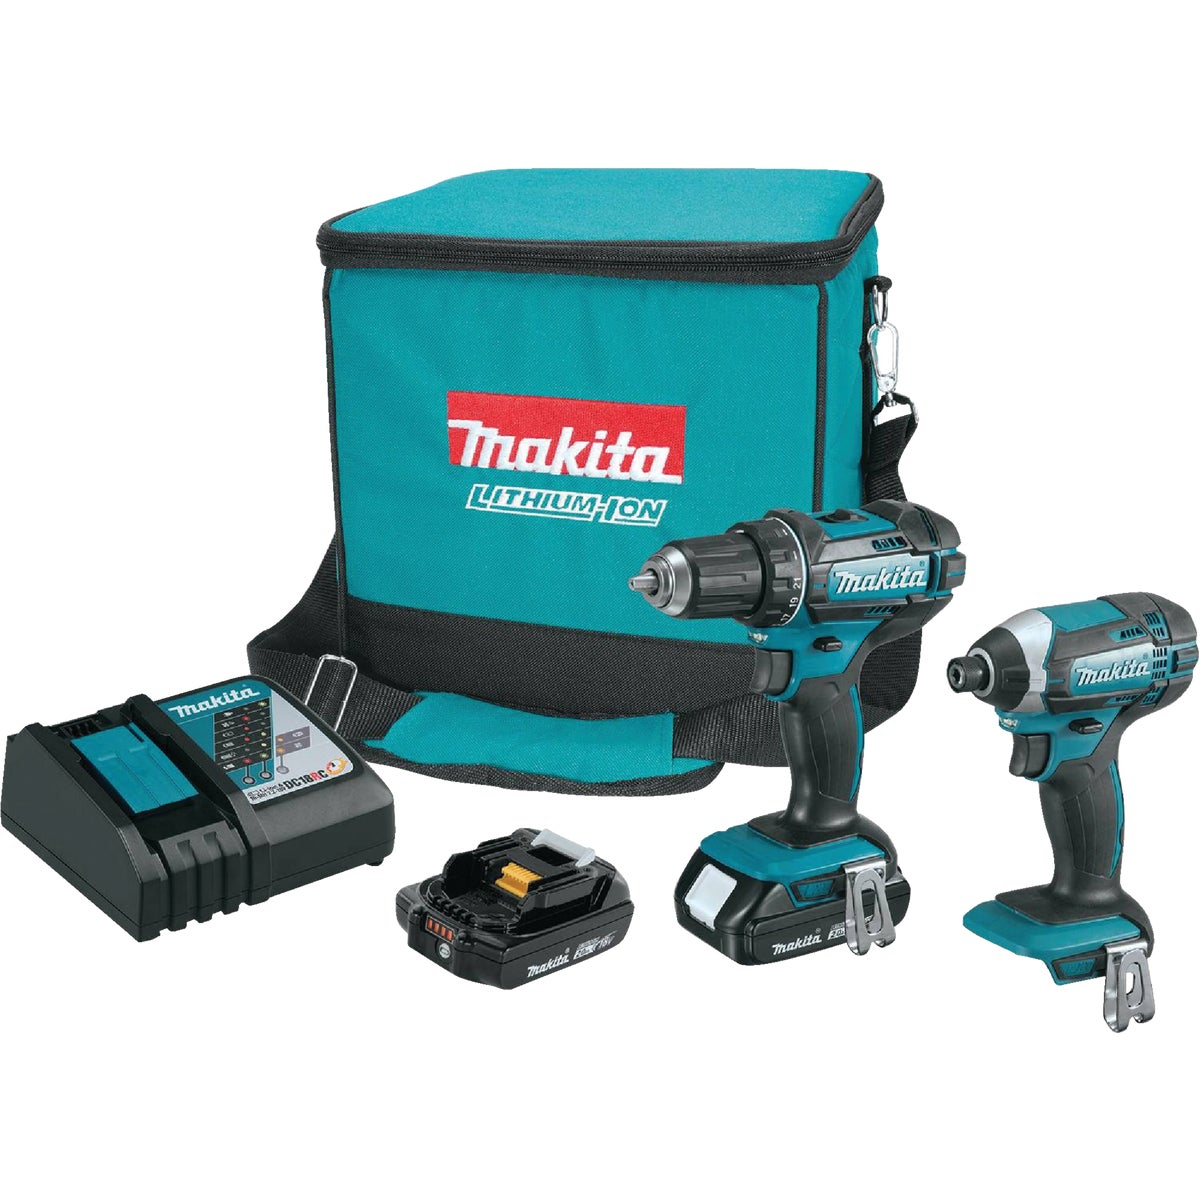 18V DRILL IMPACT KIT - LCT200W by Makita Usa Inc